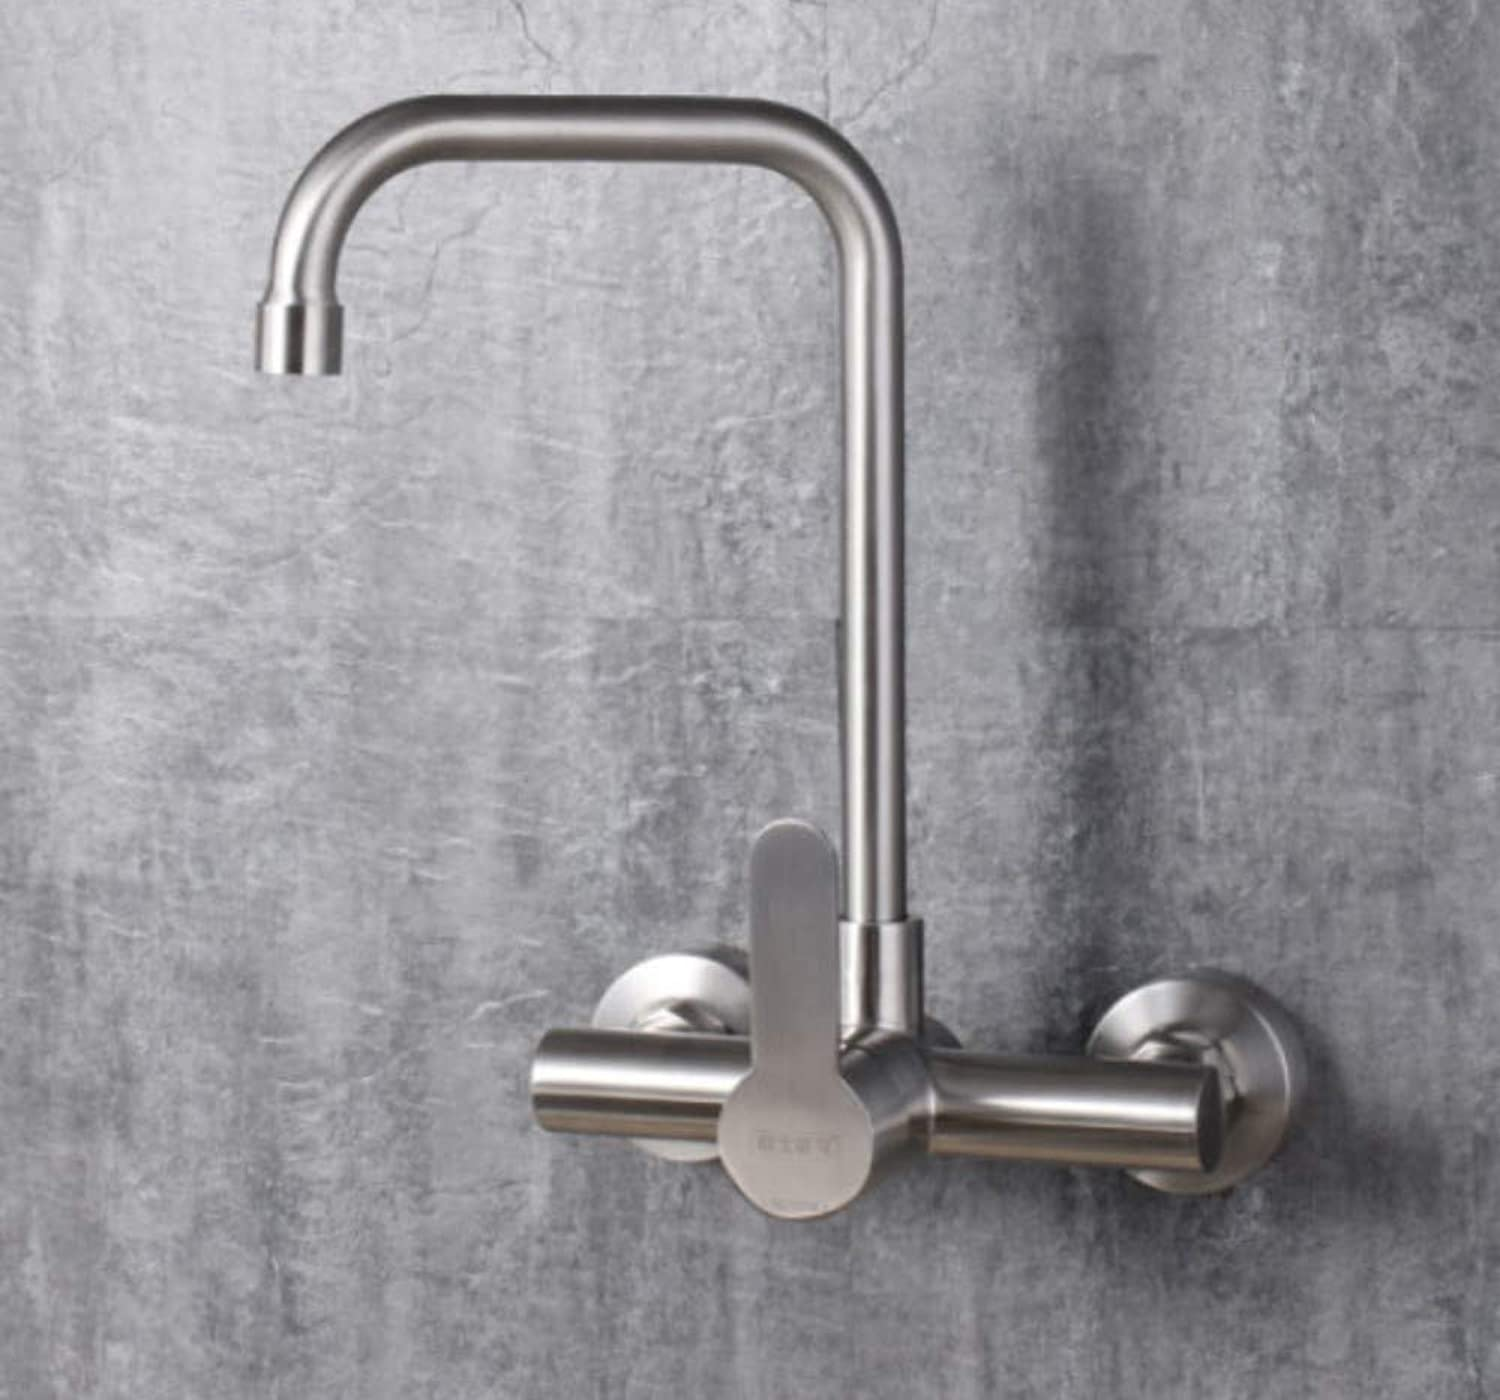 Faucet Waste Mono Spoutstainless Steel Wall-Mounted Hot and Cold Kitchen 360° Universal redating Concealed Bathroom